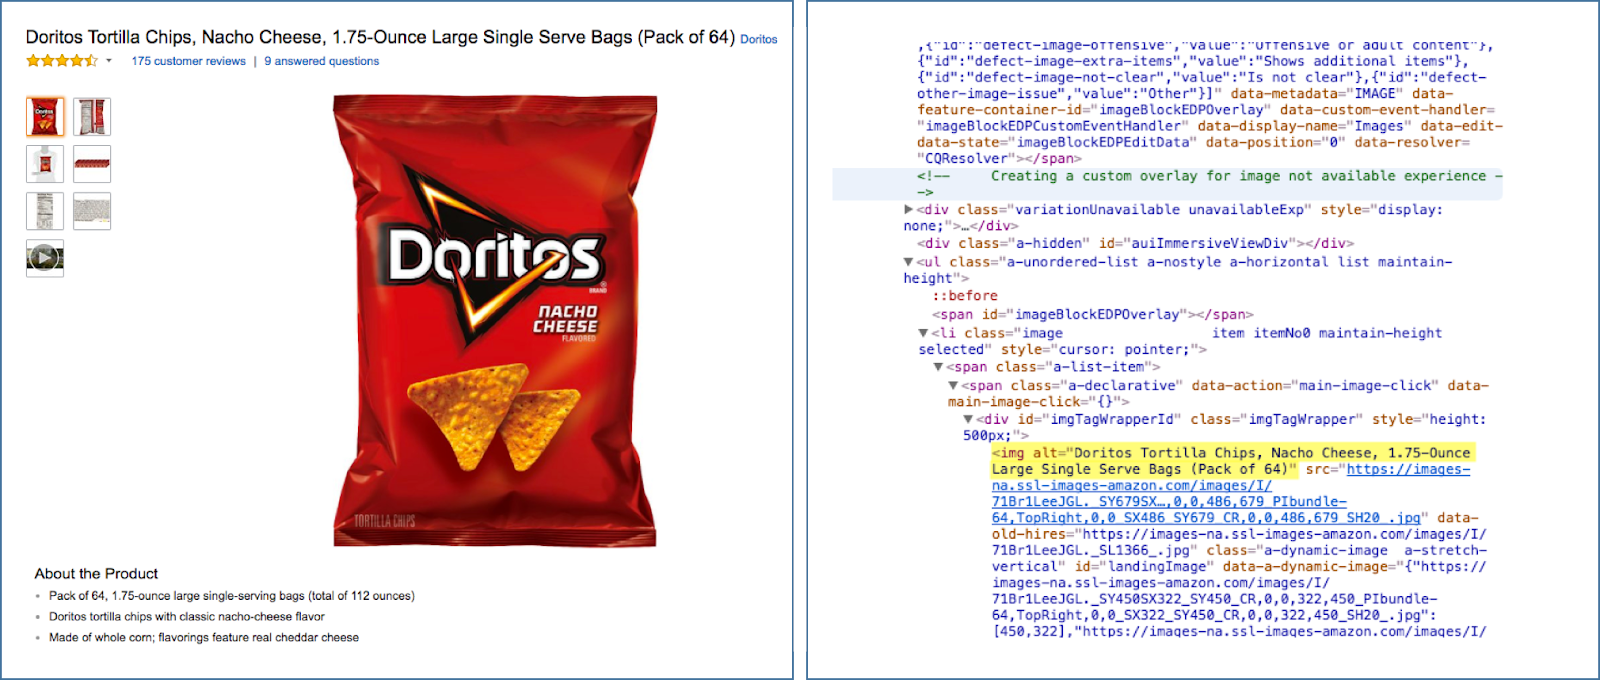 Left-hand side pictures a bag of Doritos, right-hand side pictures alternative text